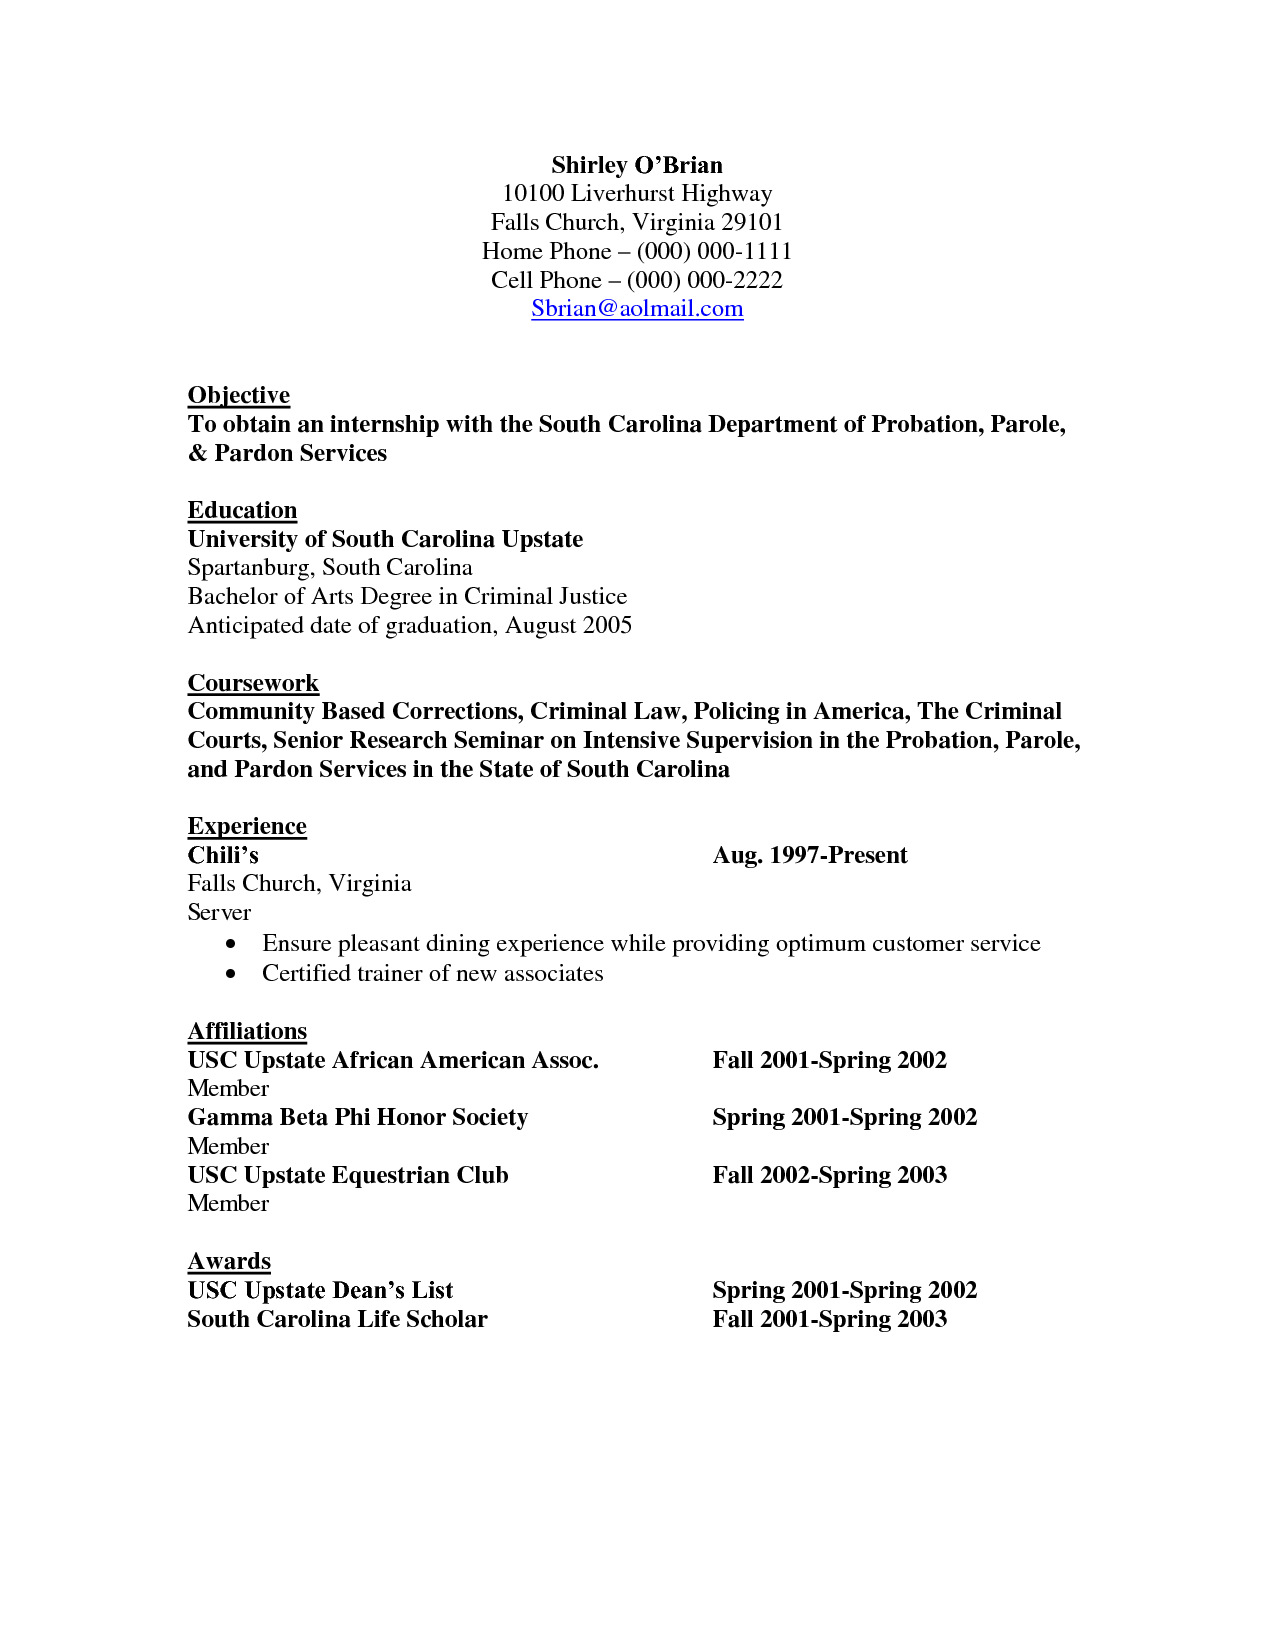 Objective For Resumes Objective Resume Criminal Justice  Httpwwwresumecareer